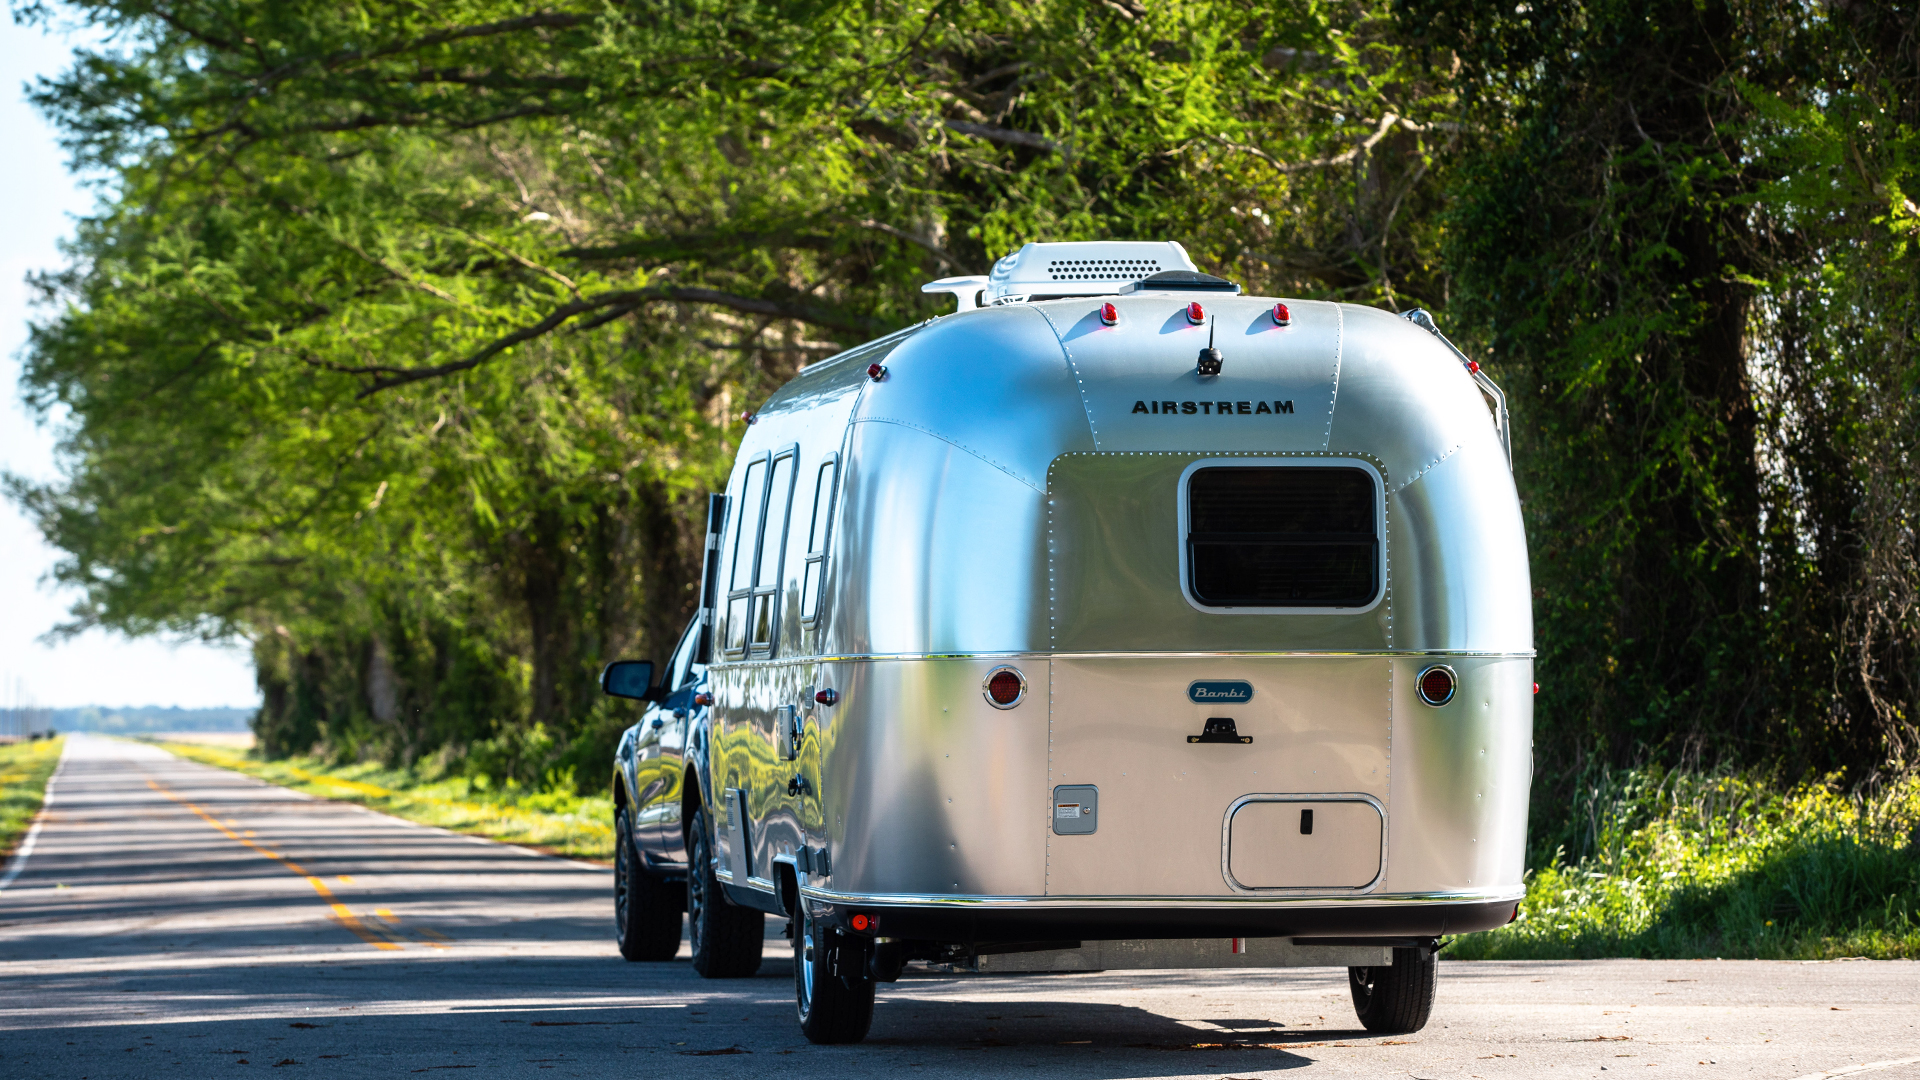 Airstream-Bambi-Travel-Trailer-Towed-by-Ford-Ranger